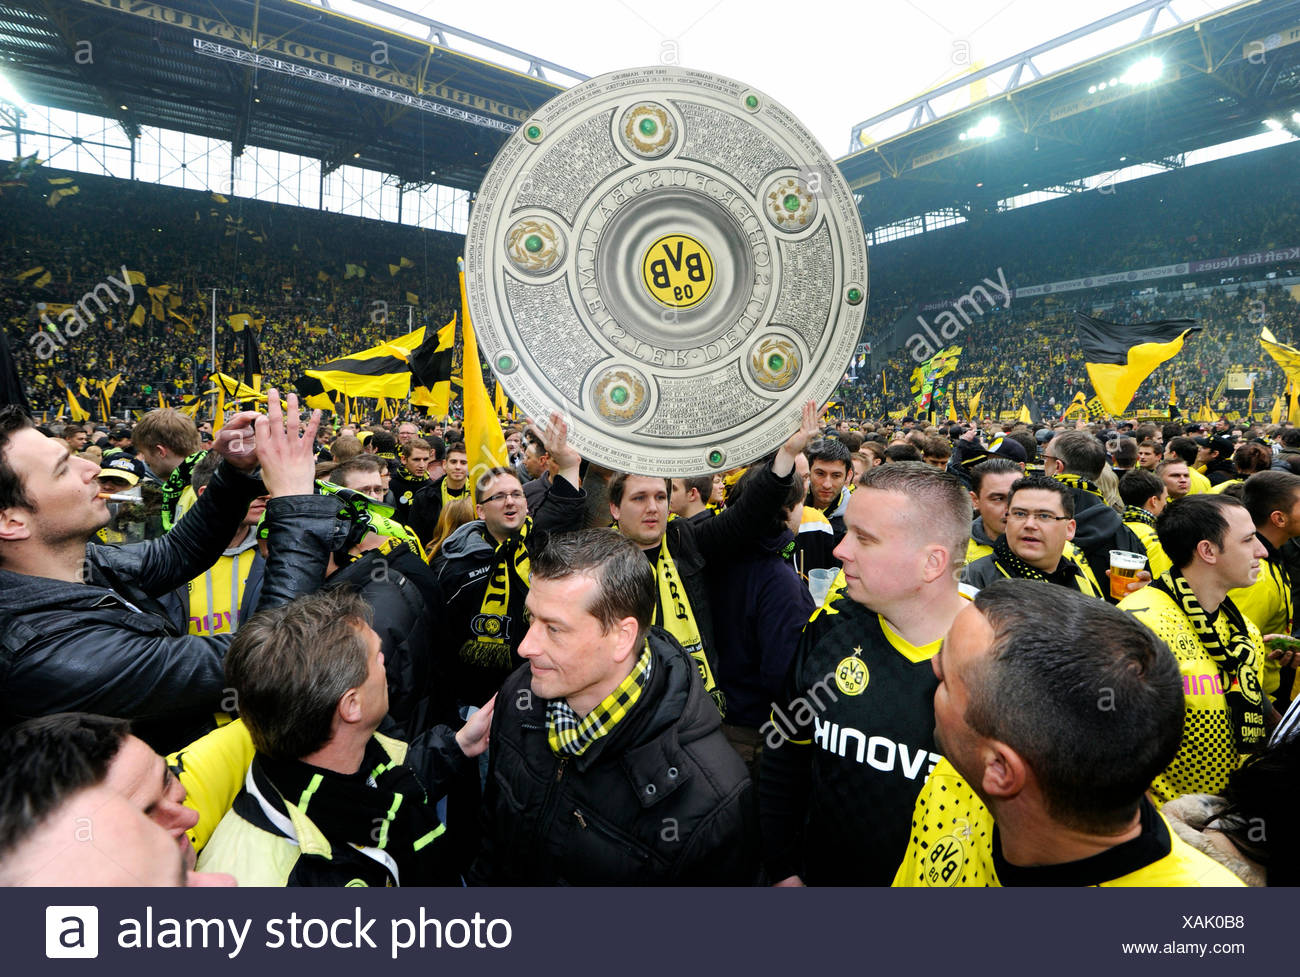 Football club BVB Borussia Dortmund fans on the pitch with a dummy of the league cup trophy, after match Borussia Dortmund vs SC Stock Photo